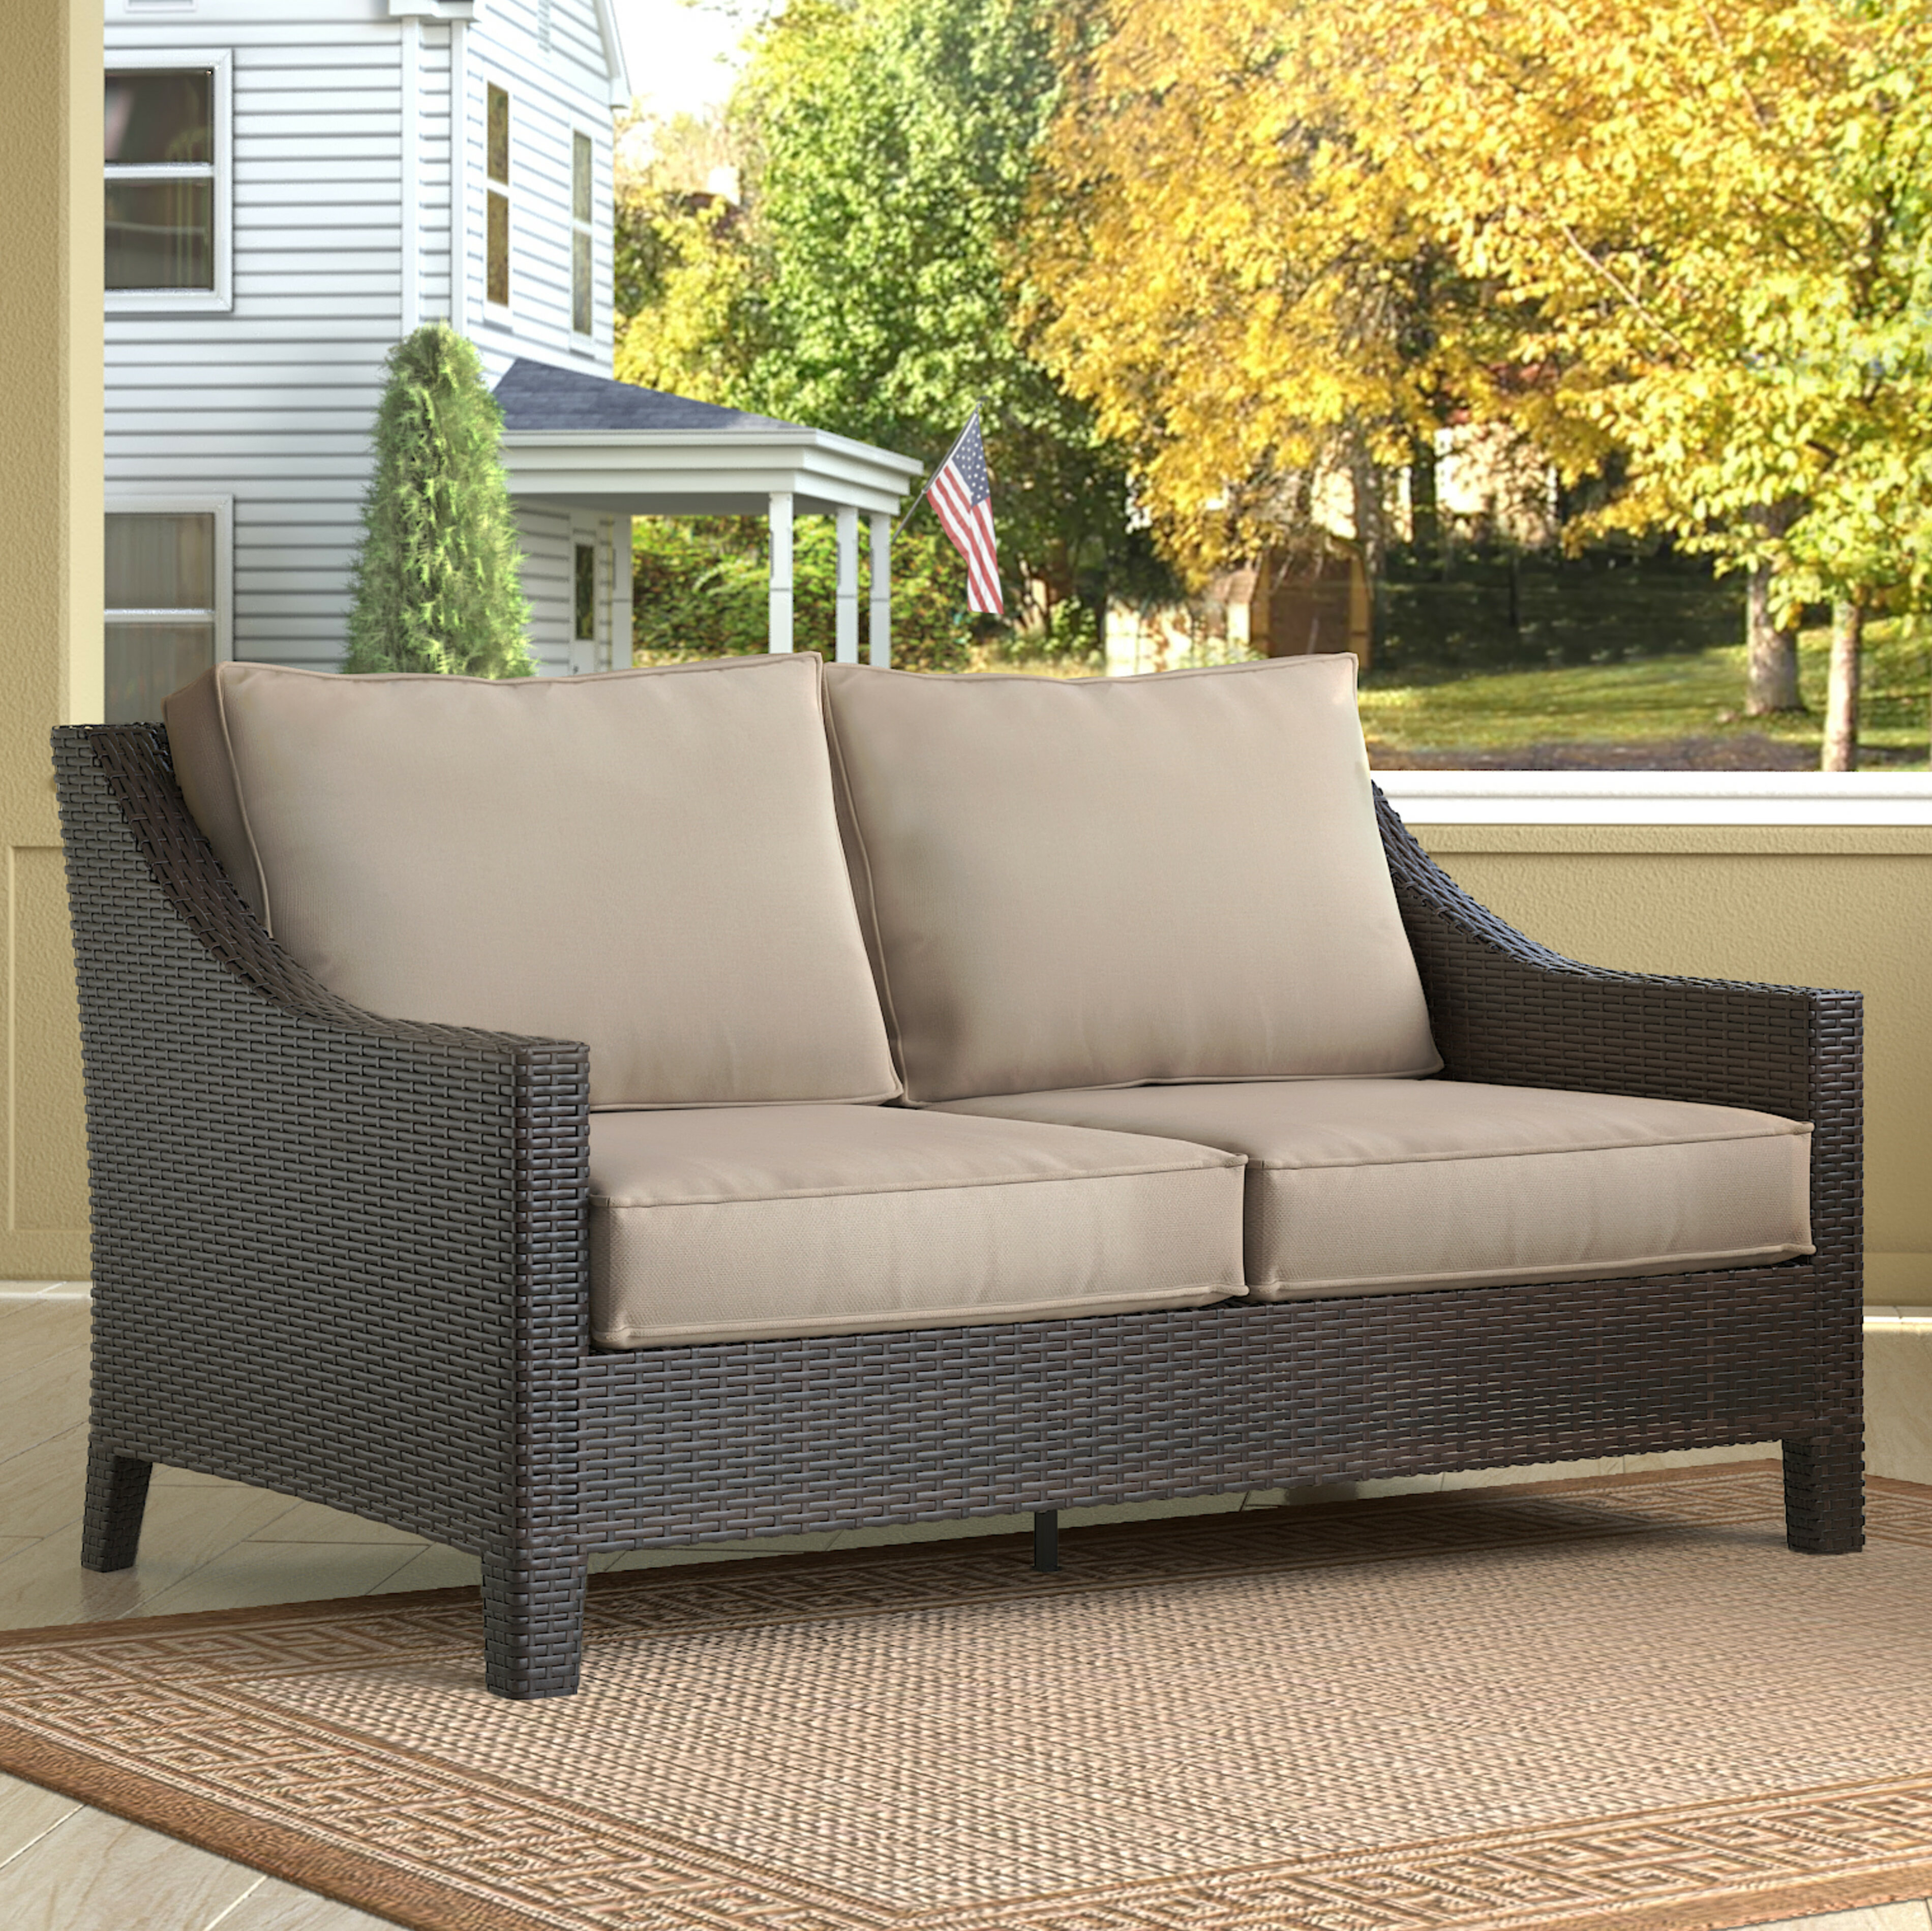 Tremendous Tahoe Outdoor Wicker Loveseat With Cushions Beutiful Home Inspiration Aditmahrainfo